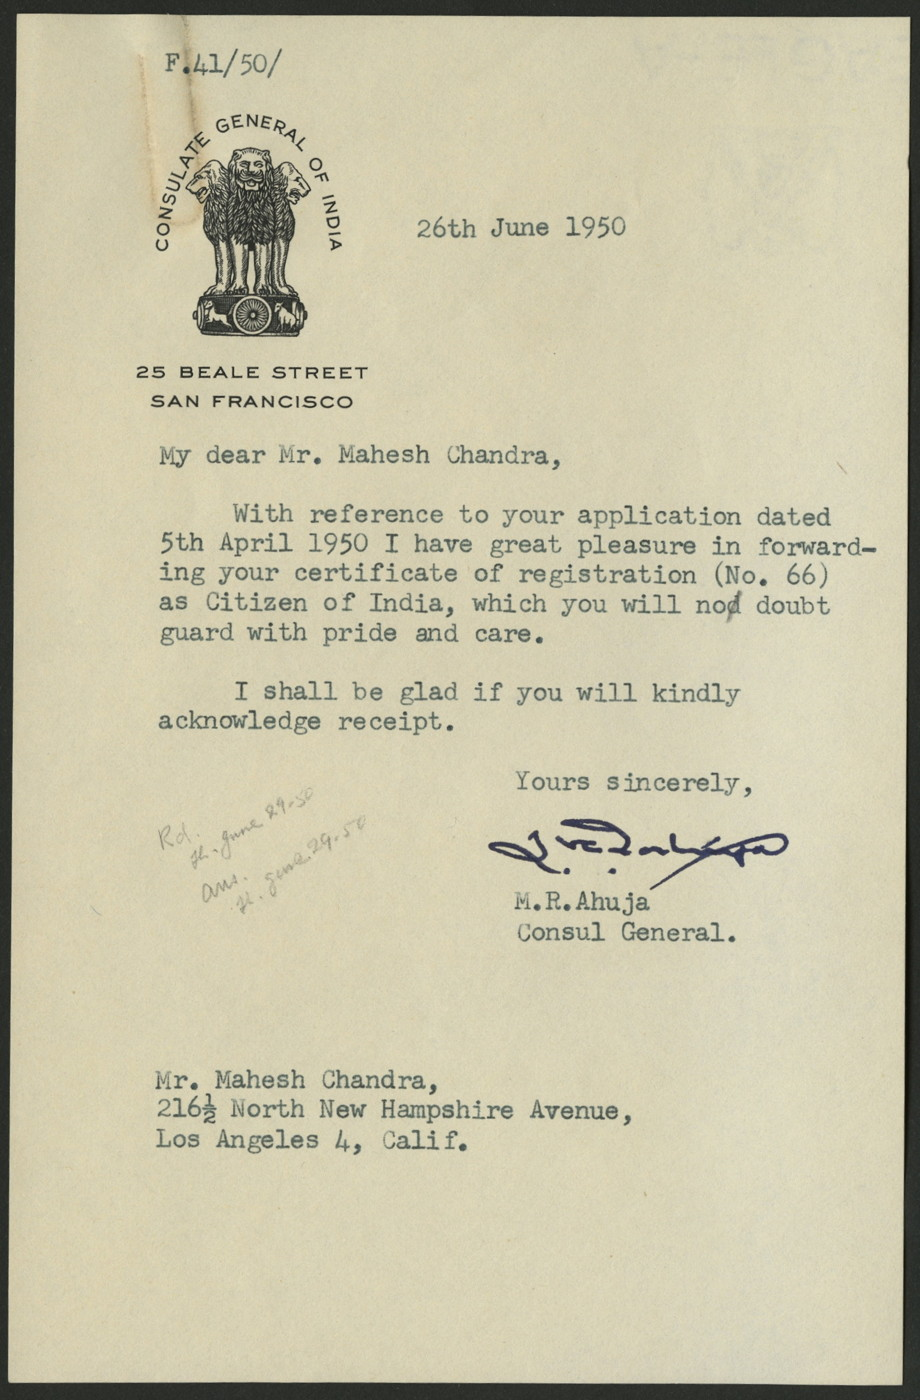 Certification Of Indian Citizenship For Mahesh Chandra